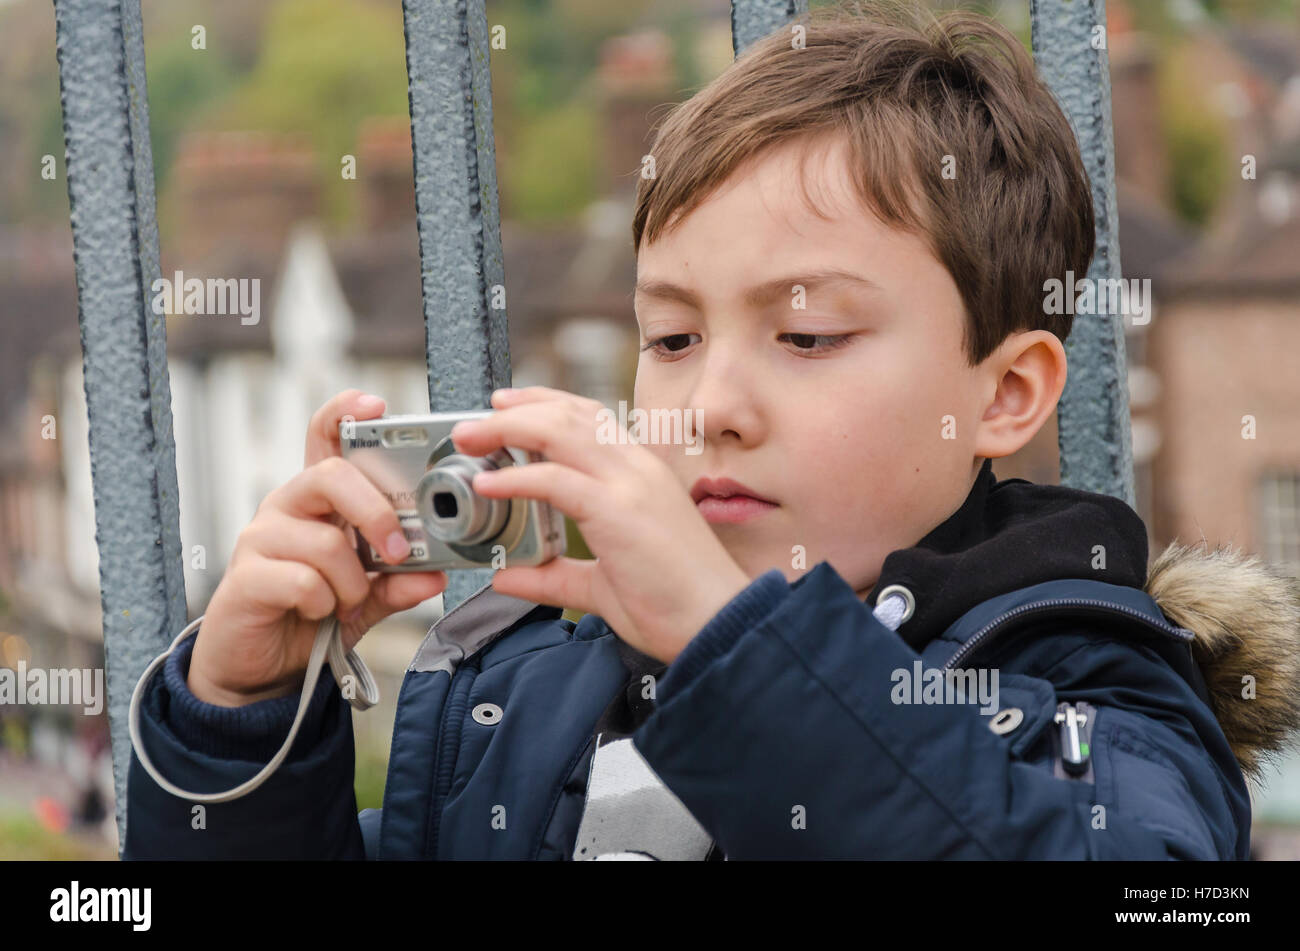 a-young-boy-taking-a-photograph-on-the-iron-bridge-at-ironbridge-in-H7D3KN.jpg